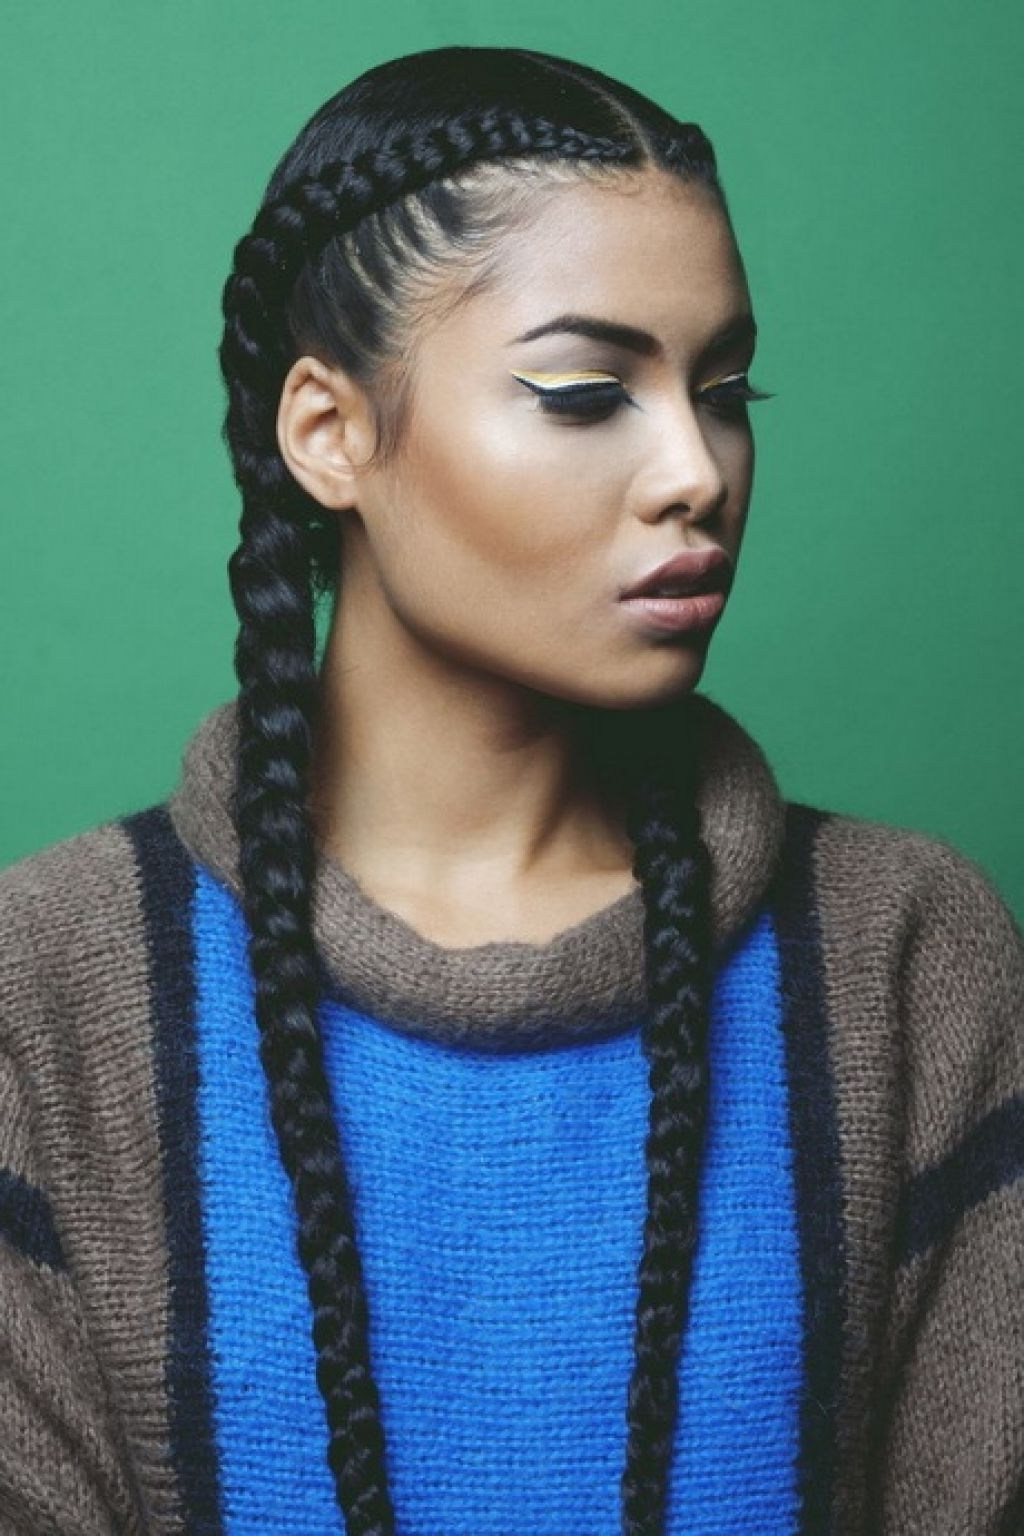 30 Advanced French Braid Hairstyles For Black Hair ~ Louis Palace With Well Known French Braid Hairstyles For Black Hair (View 7 of 15)